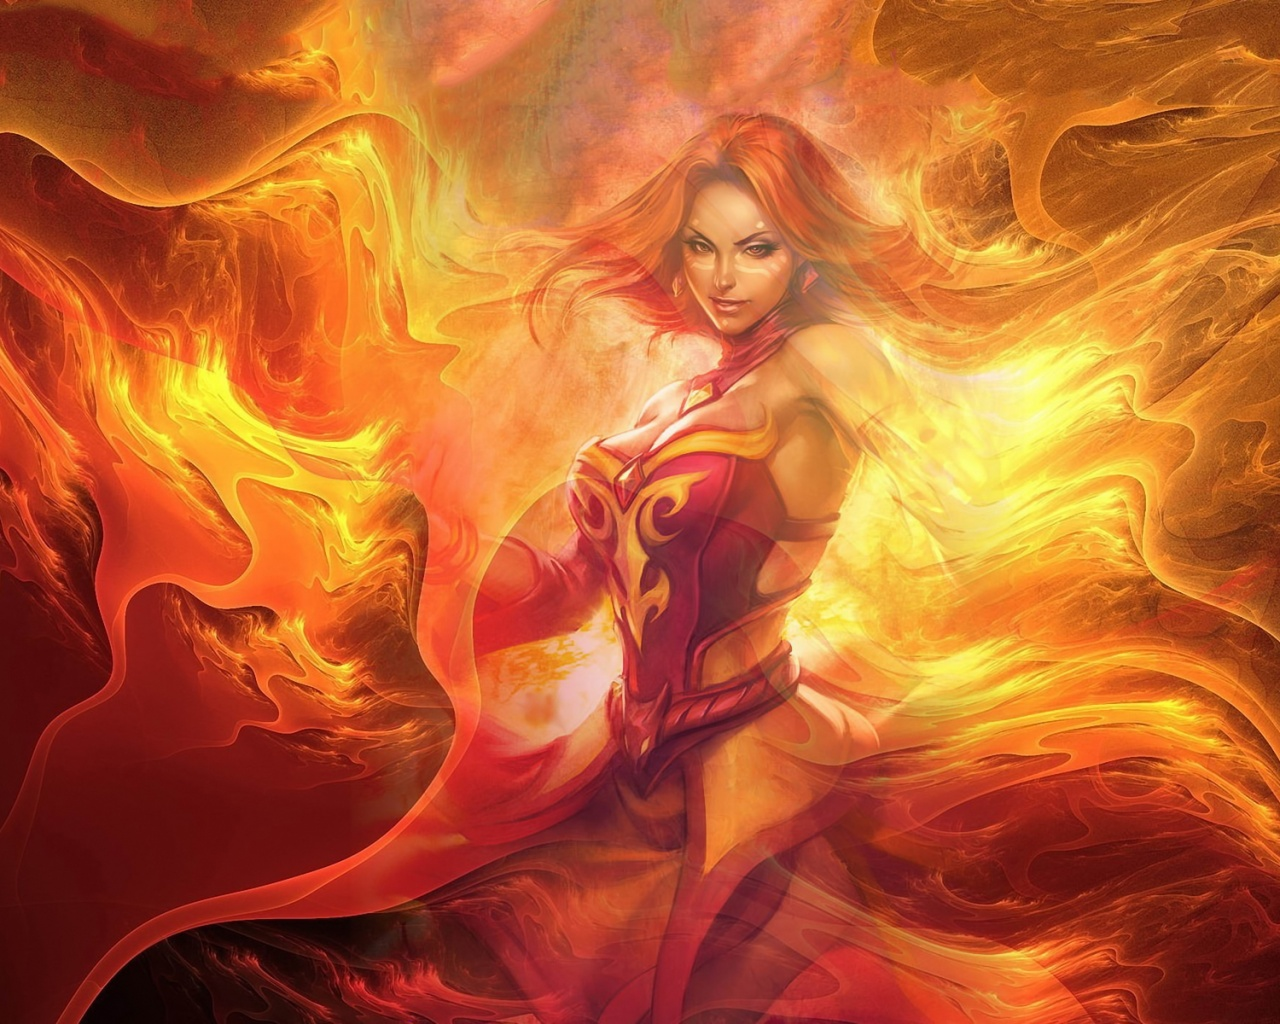 Description: The Wallpaper above is Lina inverse dota Wallpaper in Resolution 1280x1024. Choose your Resolution and Download Lina inverse dota Wallpaper